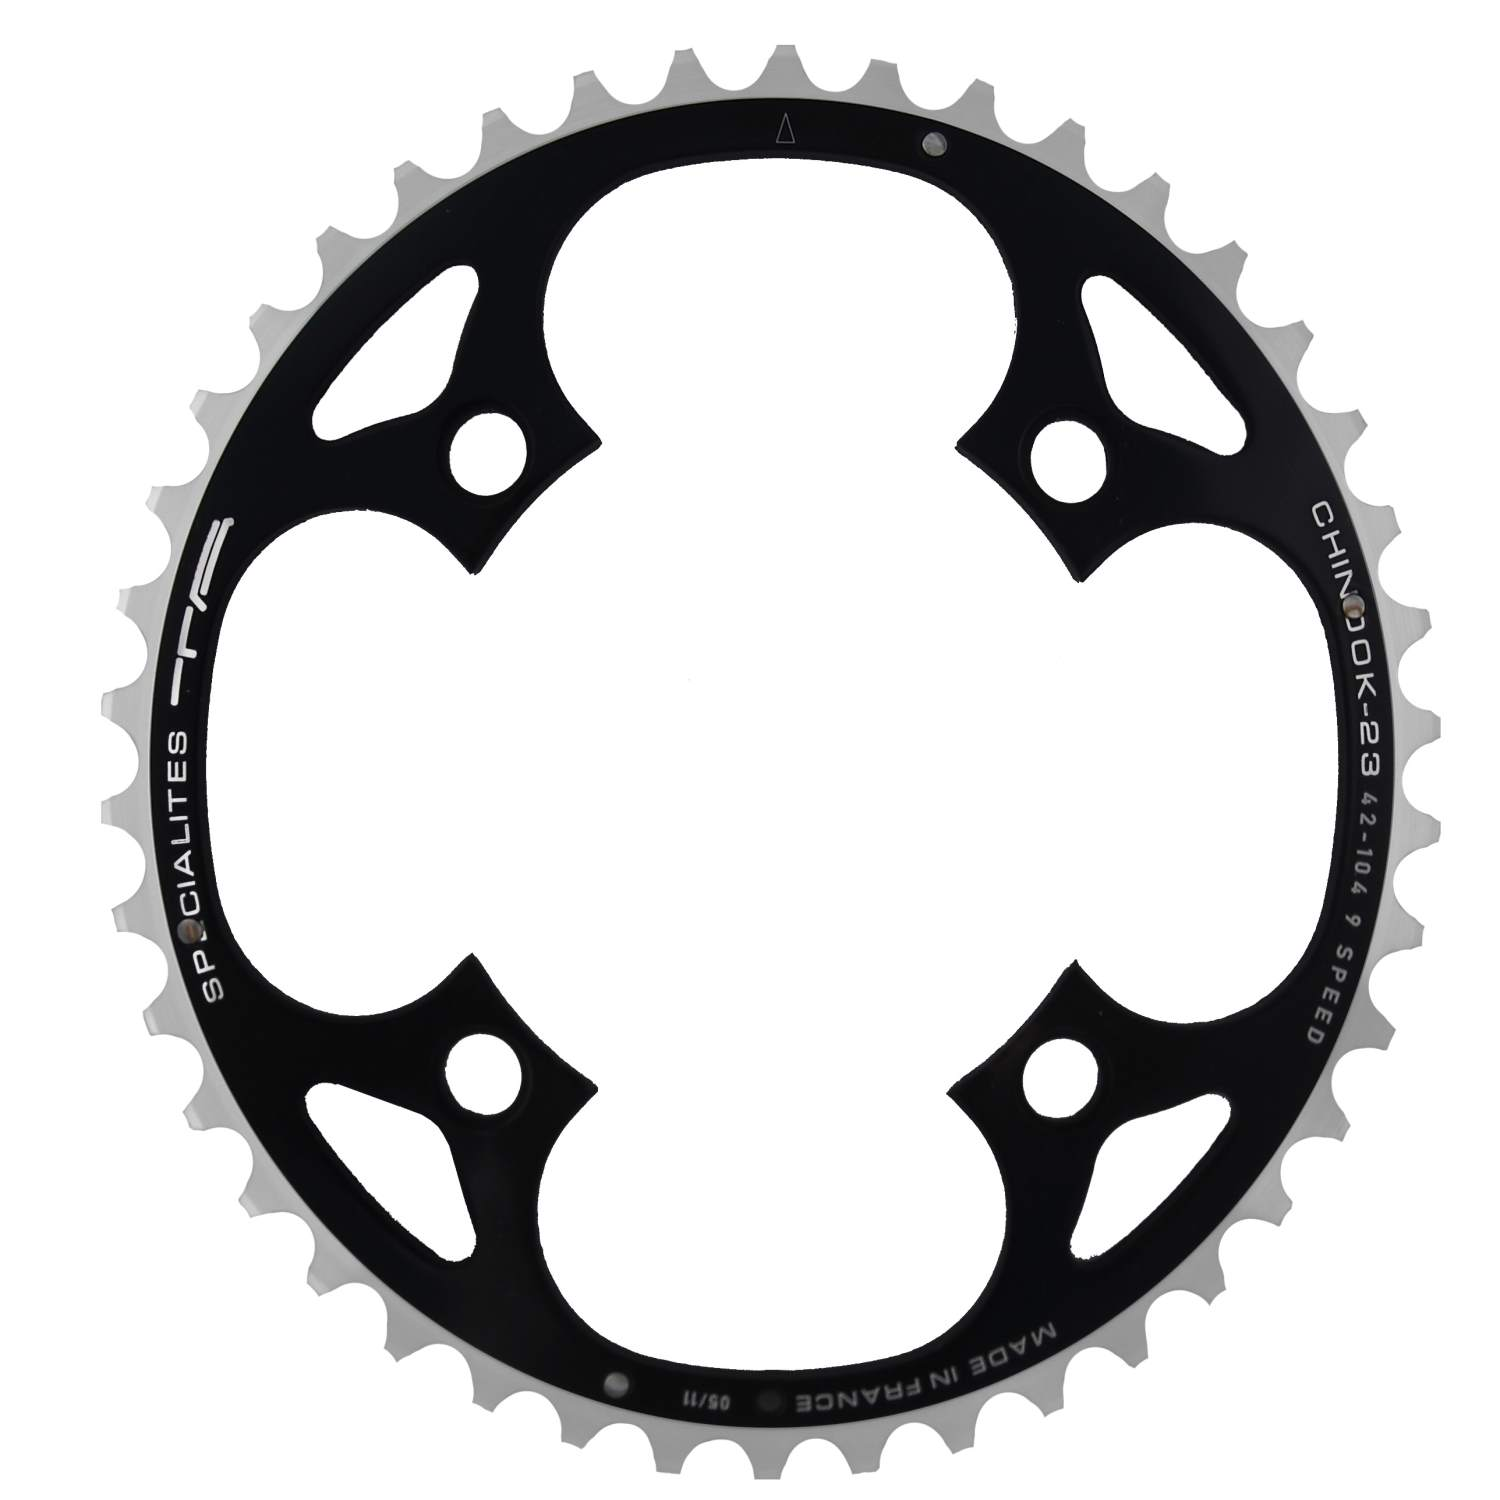 Chainring TA CHINOOK 2-104 32T